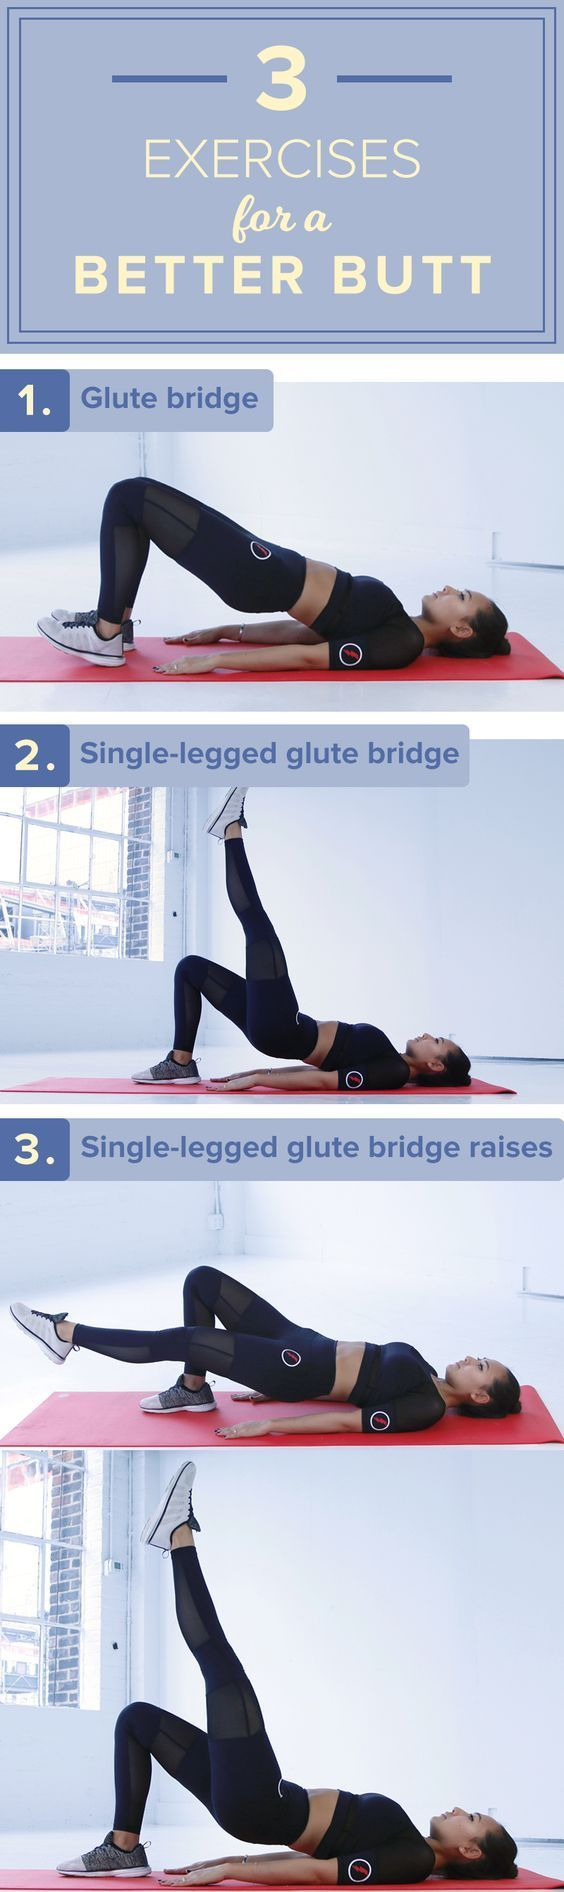 Best 25+ Hand weight workouts ideas on Pinterest | Arm workouts with dumbbells, Arm weight ...